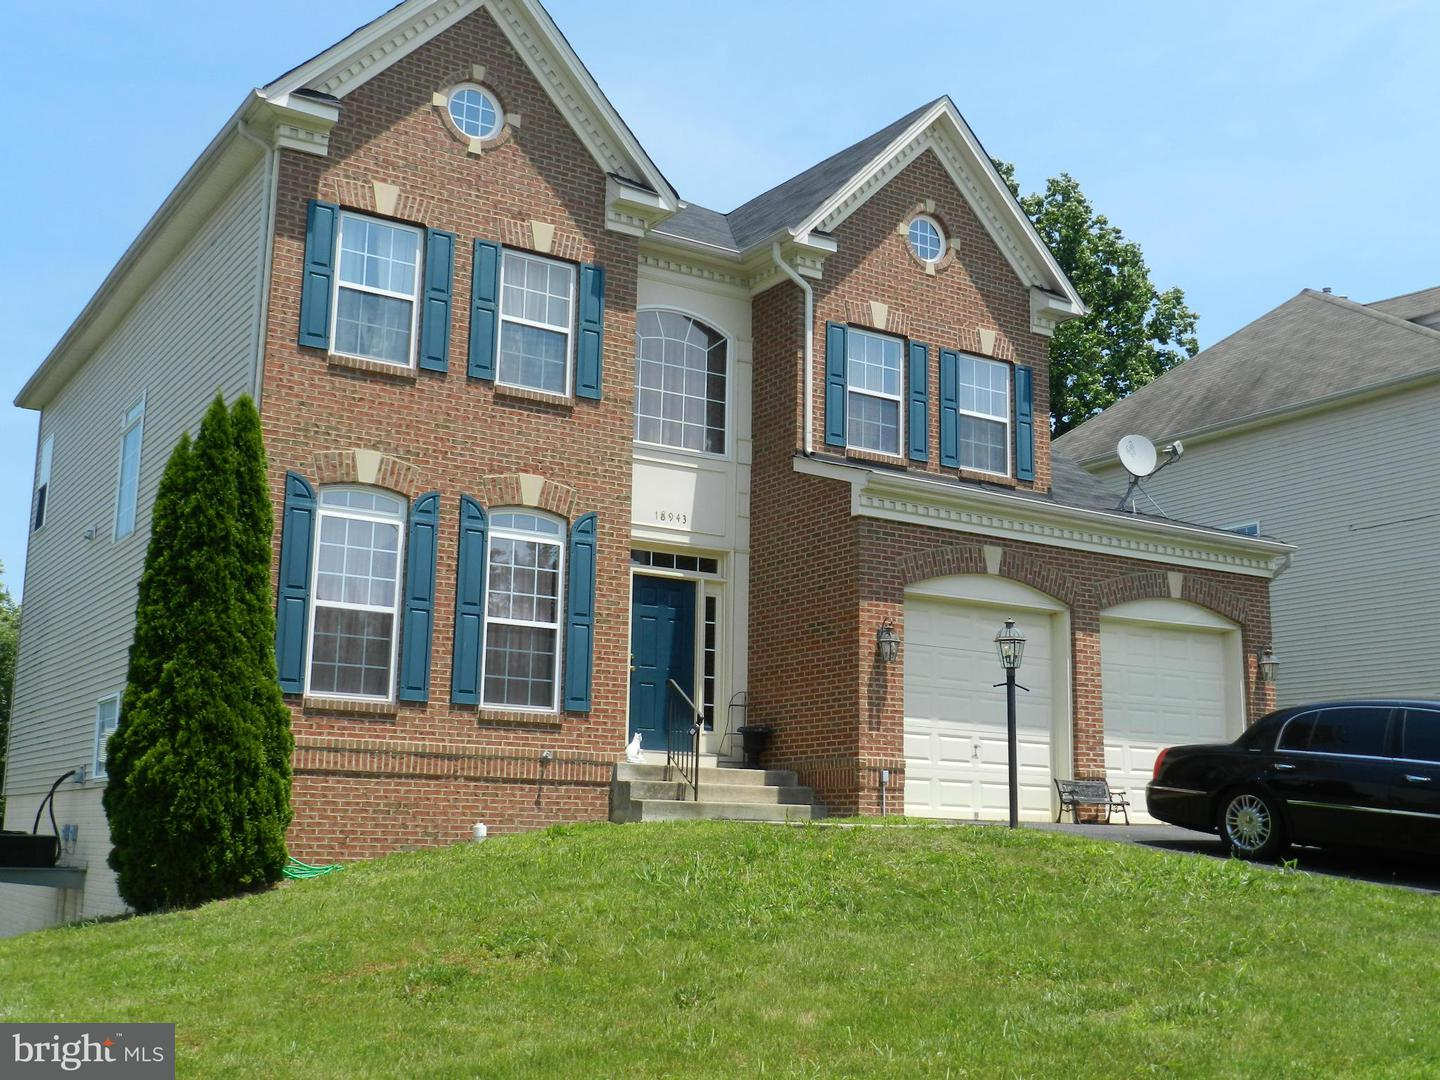 Other Residential for Rent at 18943 Highland Park Dr Triangle, Virginia 22172 United States